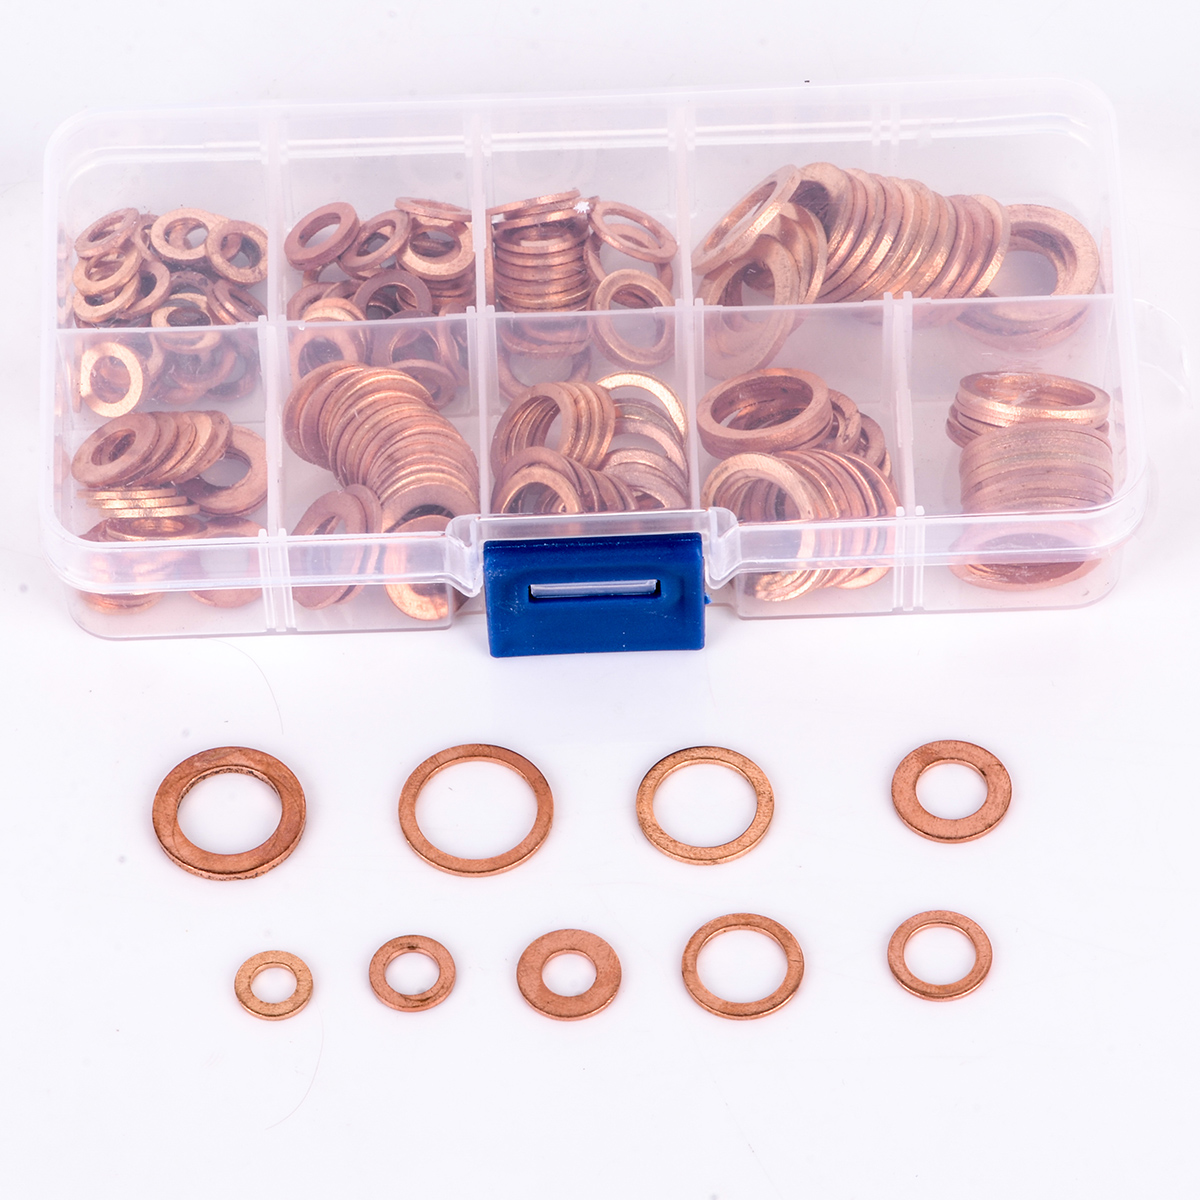 200pcs Assorted Copper Washer Gasket Set Flat Ring Seal Kit Ser M5/M6/M8/M10/M12/M14 with Plastic Box m6 m6 12 0 8 m6x12x0 8 m6 12 1 m6x12x1 din7603 insulation gasket shim crush ring seal red steel paper washer